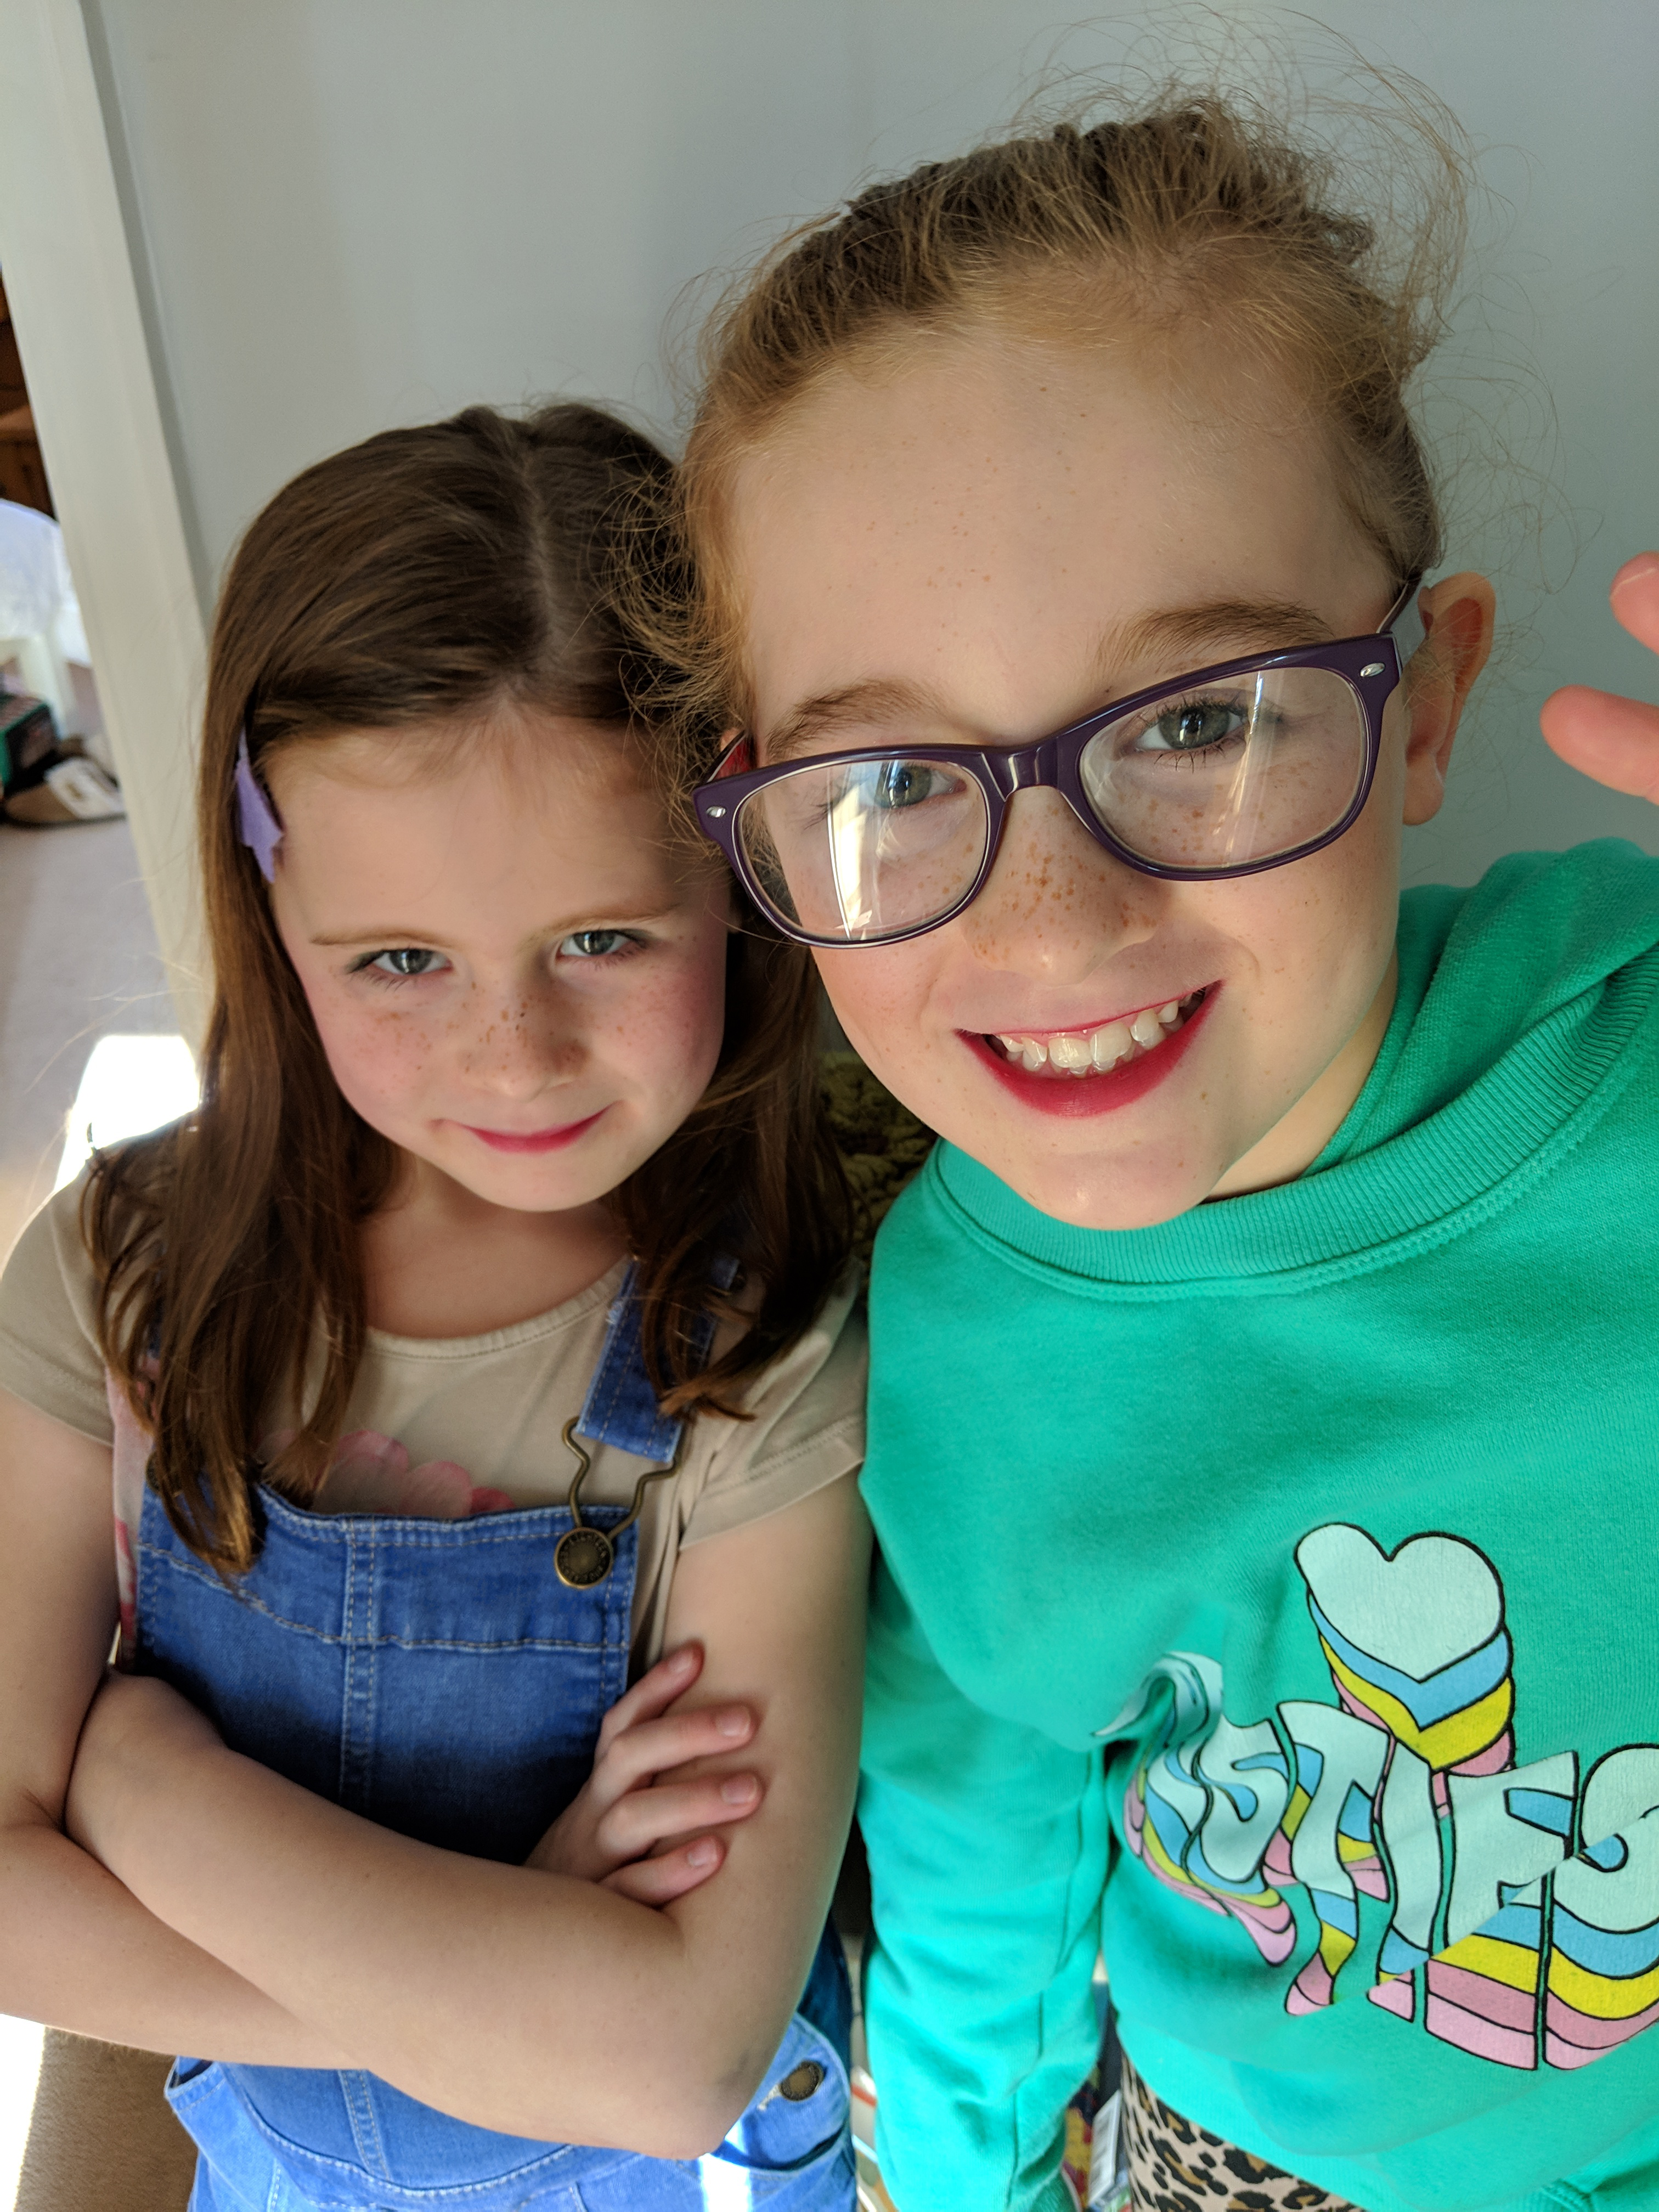 Writer Claire Spreadbury's two daughters, Poppy and Rosie